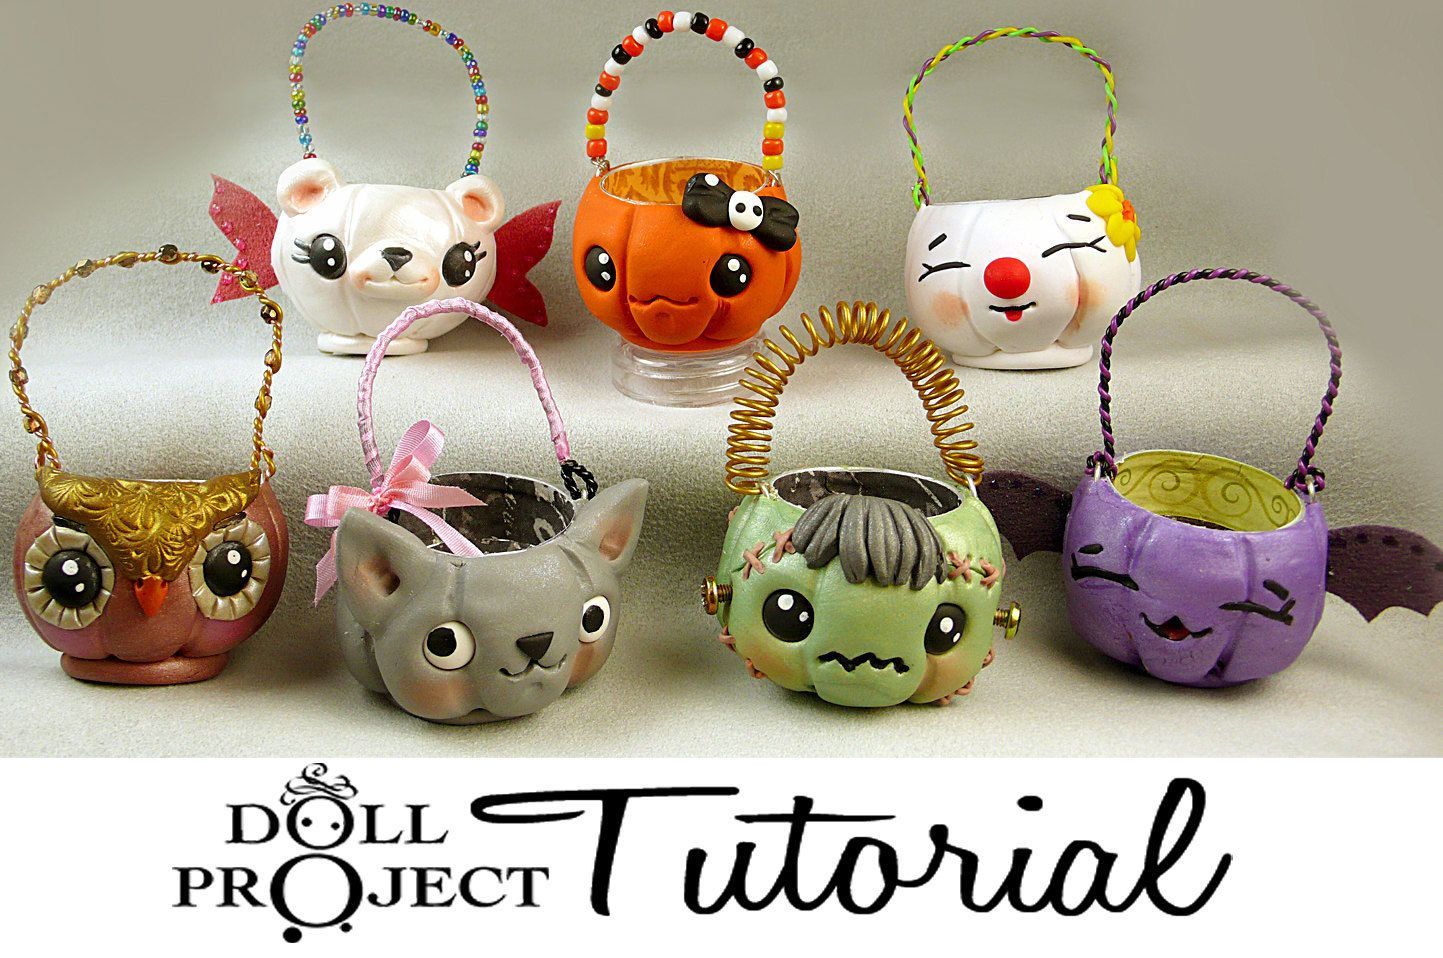 Halloween Candy Pails PDF Tutorial for Doll Costumes and Autumn Ornaments Learn to Sculpt Polymer Clay Pumpkins. $12.00, via Etsy.